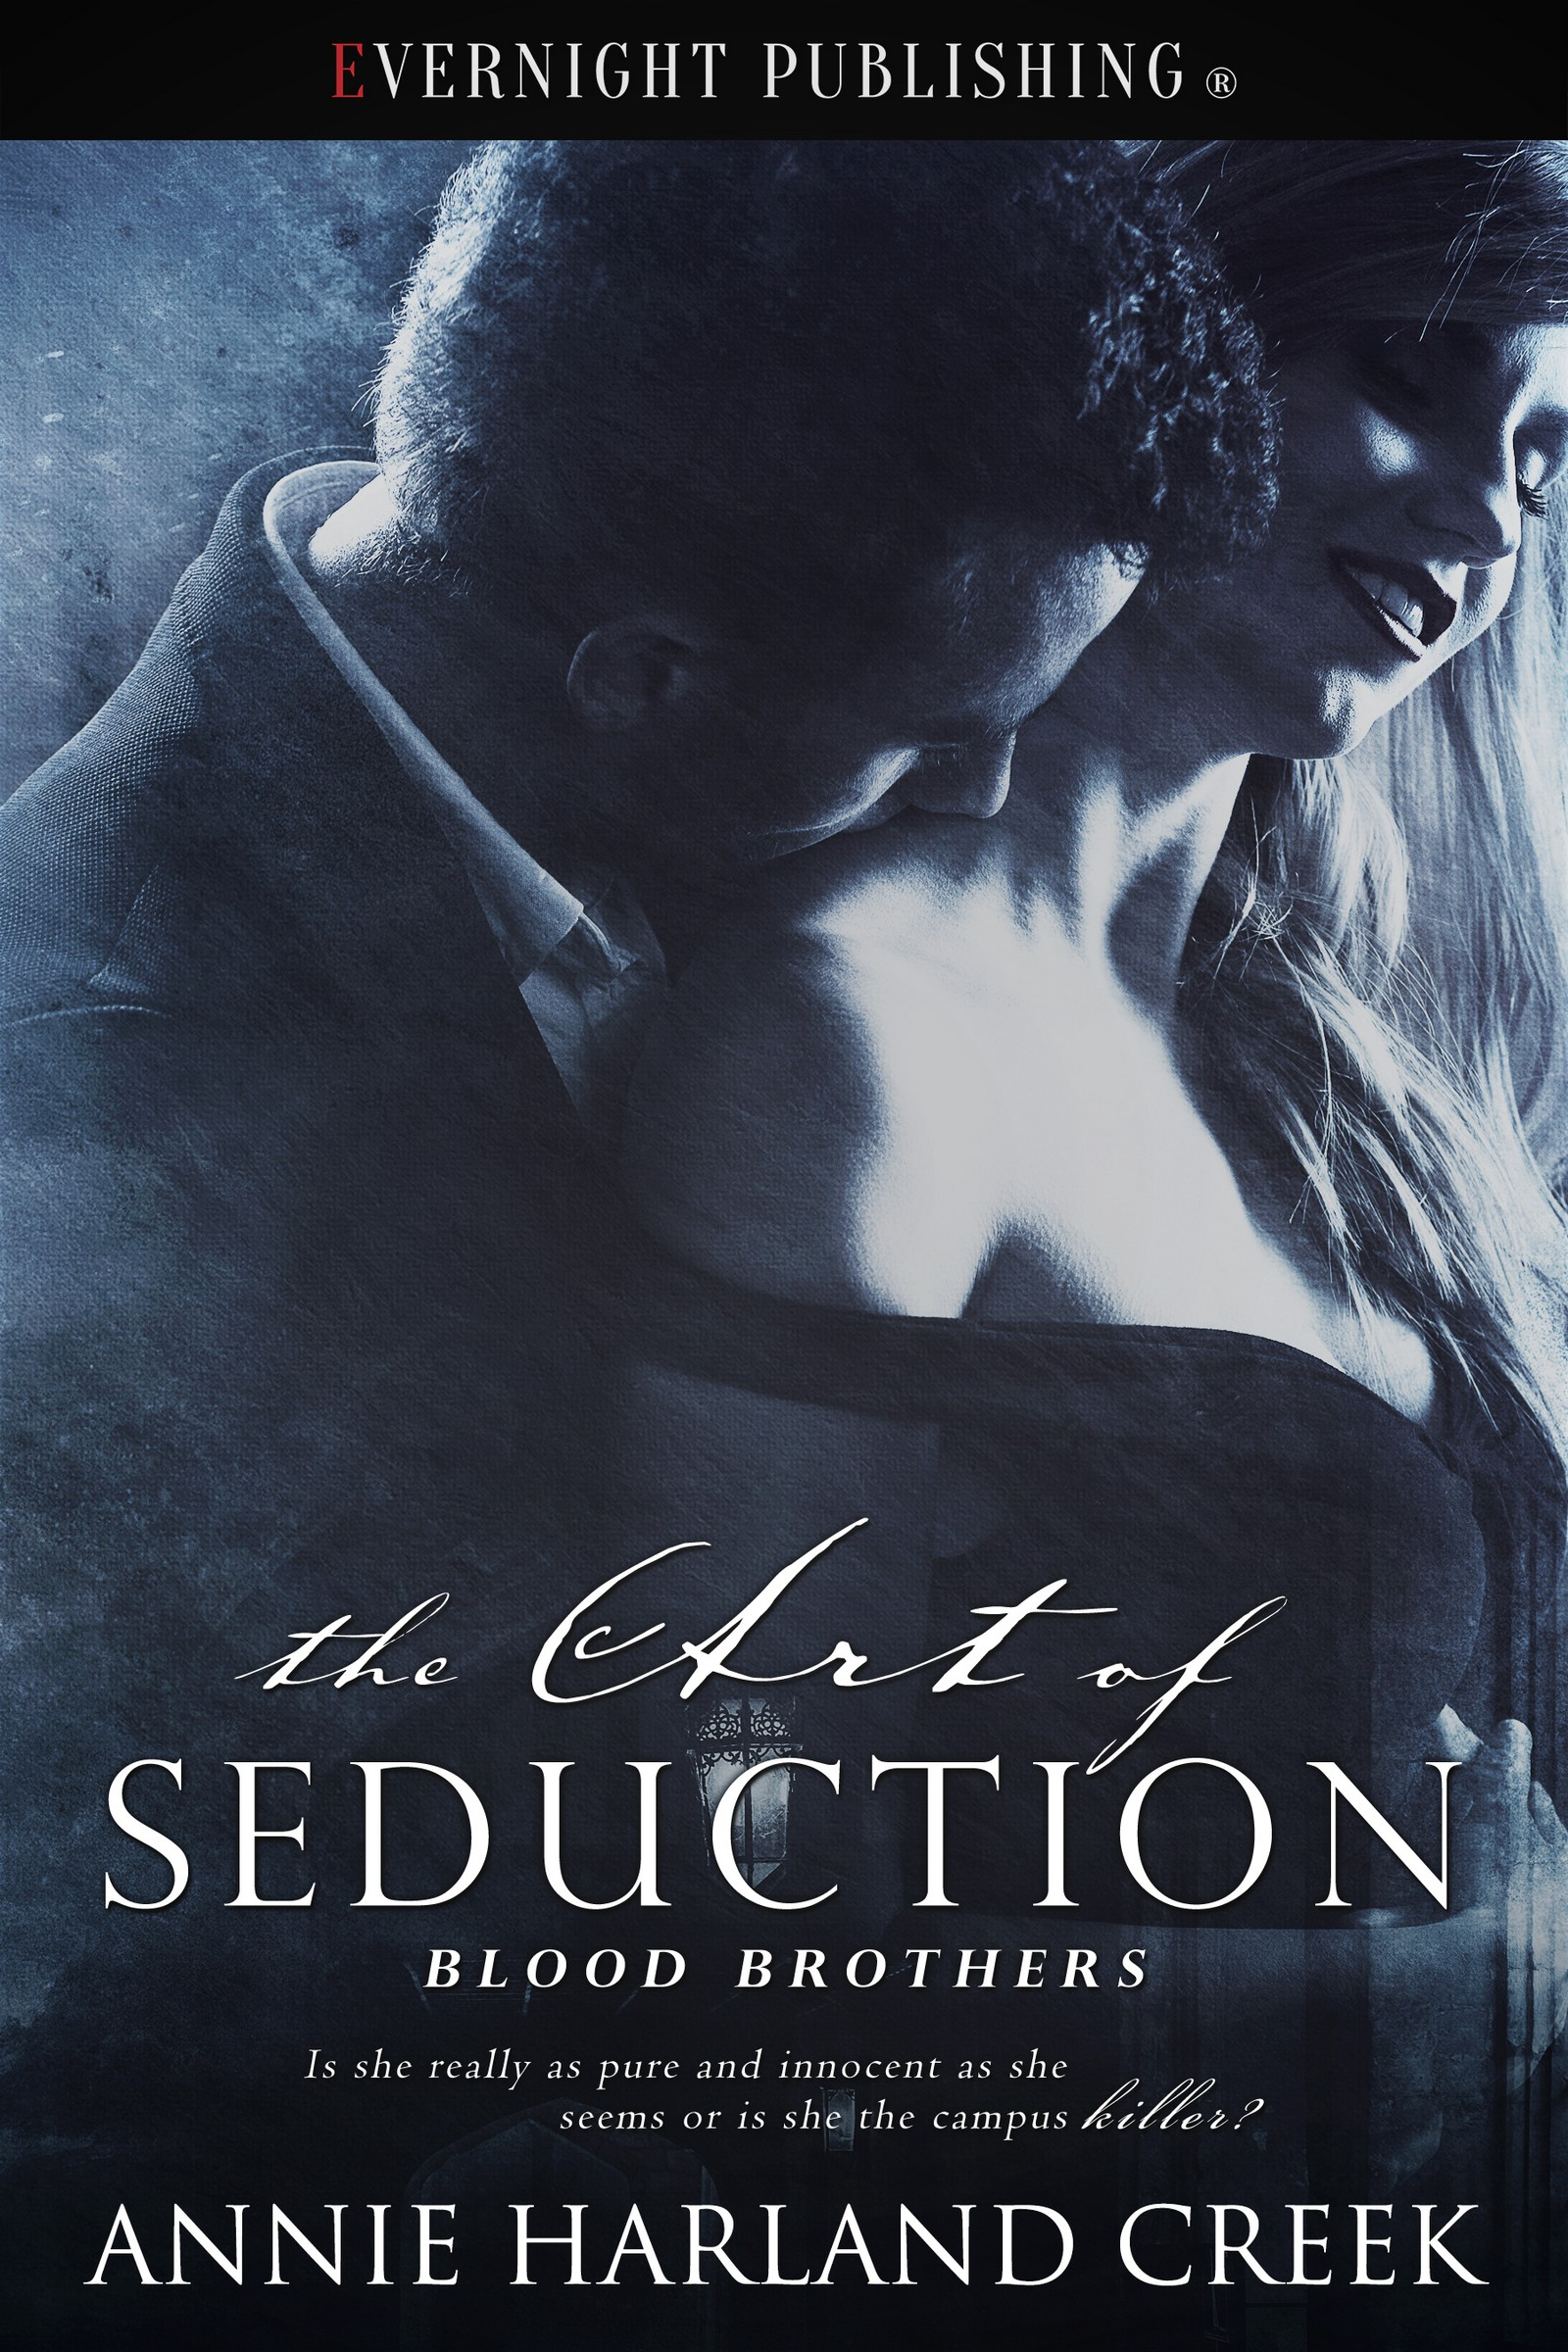 what is the art of seduction book about